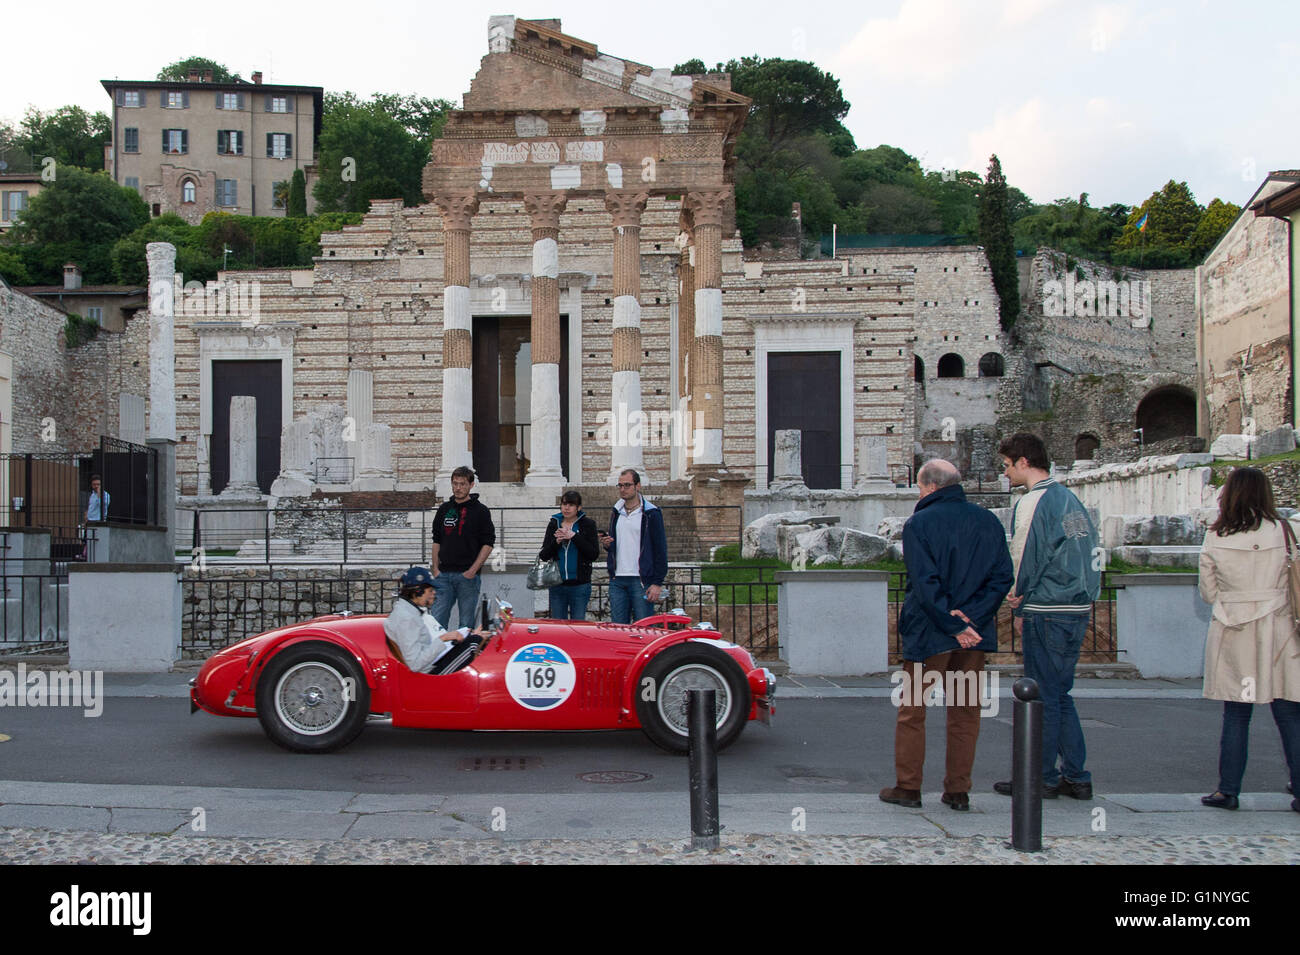 Brescia, Italy. 17th May, 2016. A red Maserati A6 GCS, built in 1948, takes part to the Roberto Gaburry trophy before - Stock Image